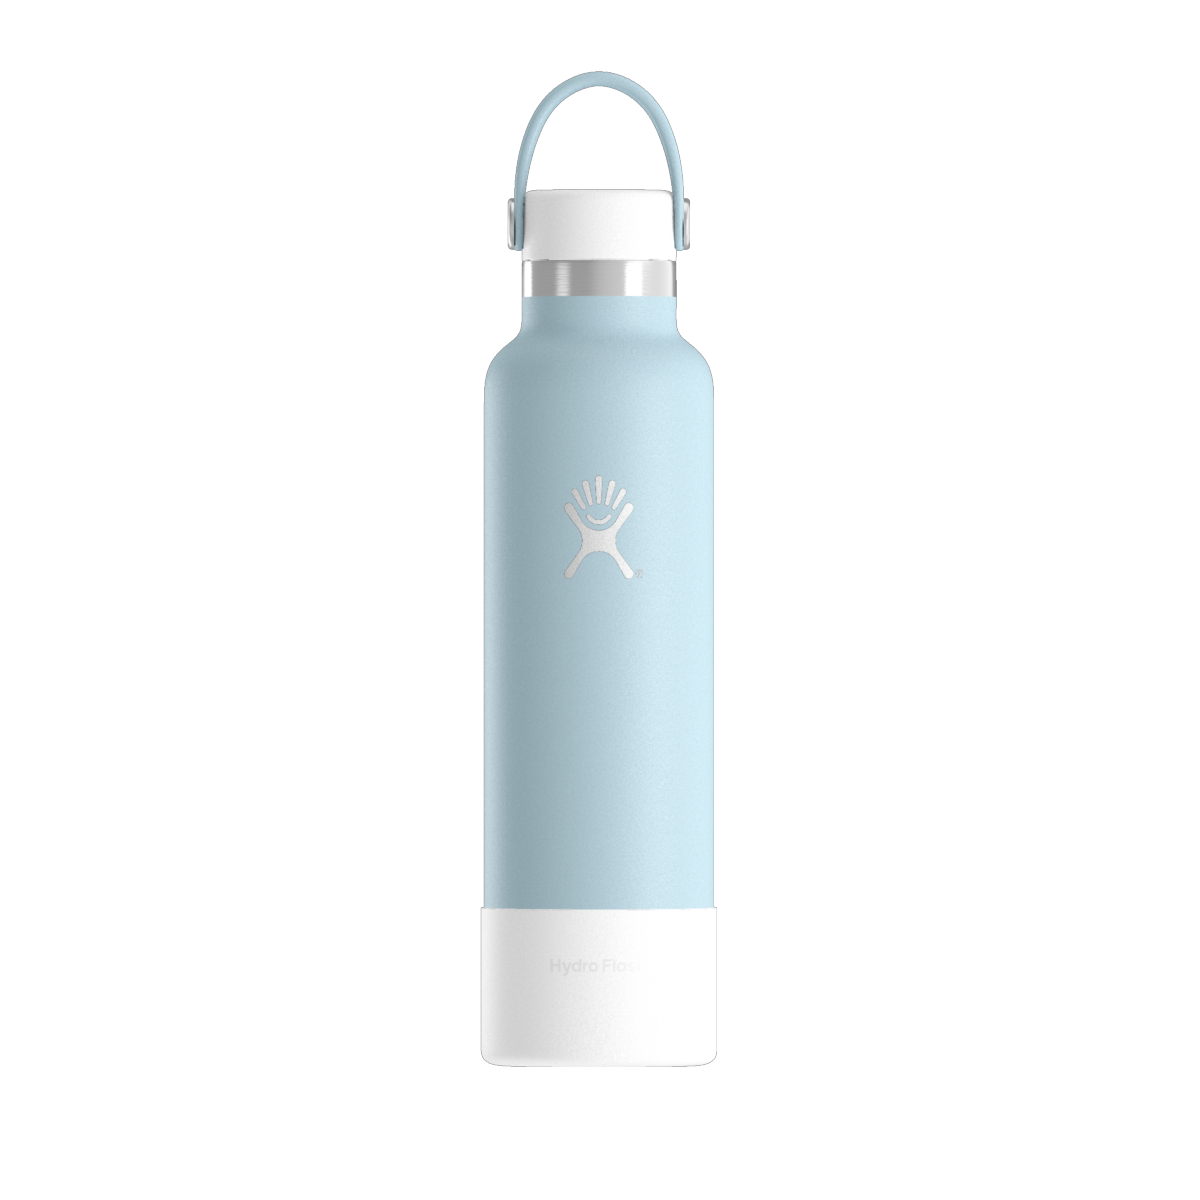 Design Your Custom Wide Mouth Bottle | My Hydro™ by Hydro